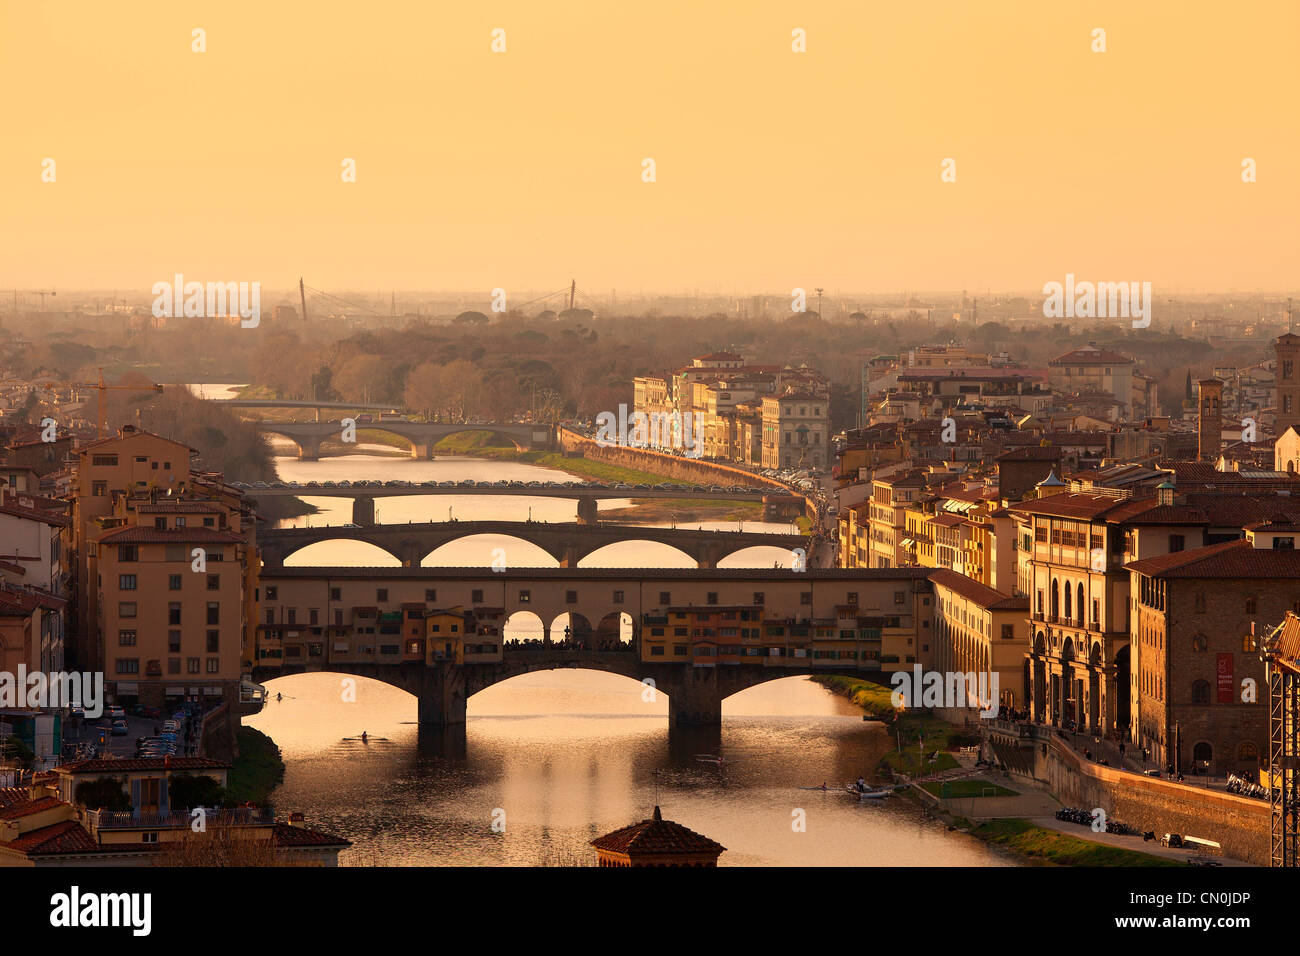 Europe, Italy, Florence, Ponte Vecchio over the Arno River at Sunset - Stock Image